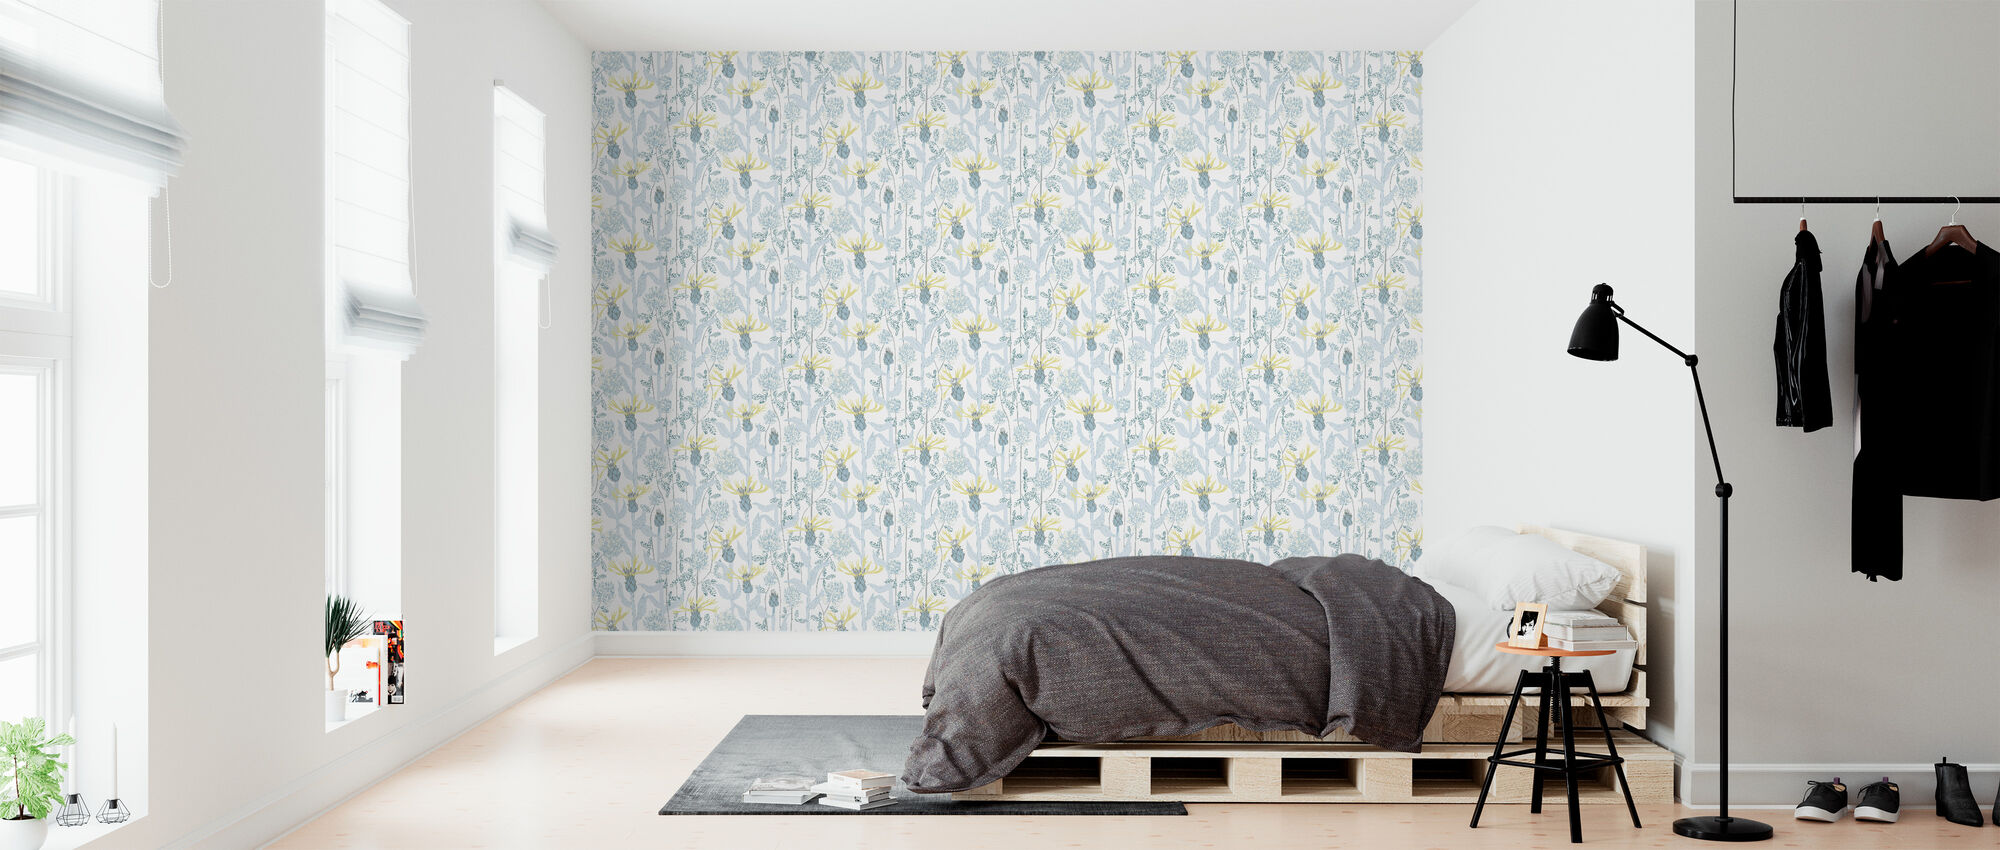 A Warm Summer's Day - Blue - Wallpaper - Bedroom